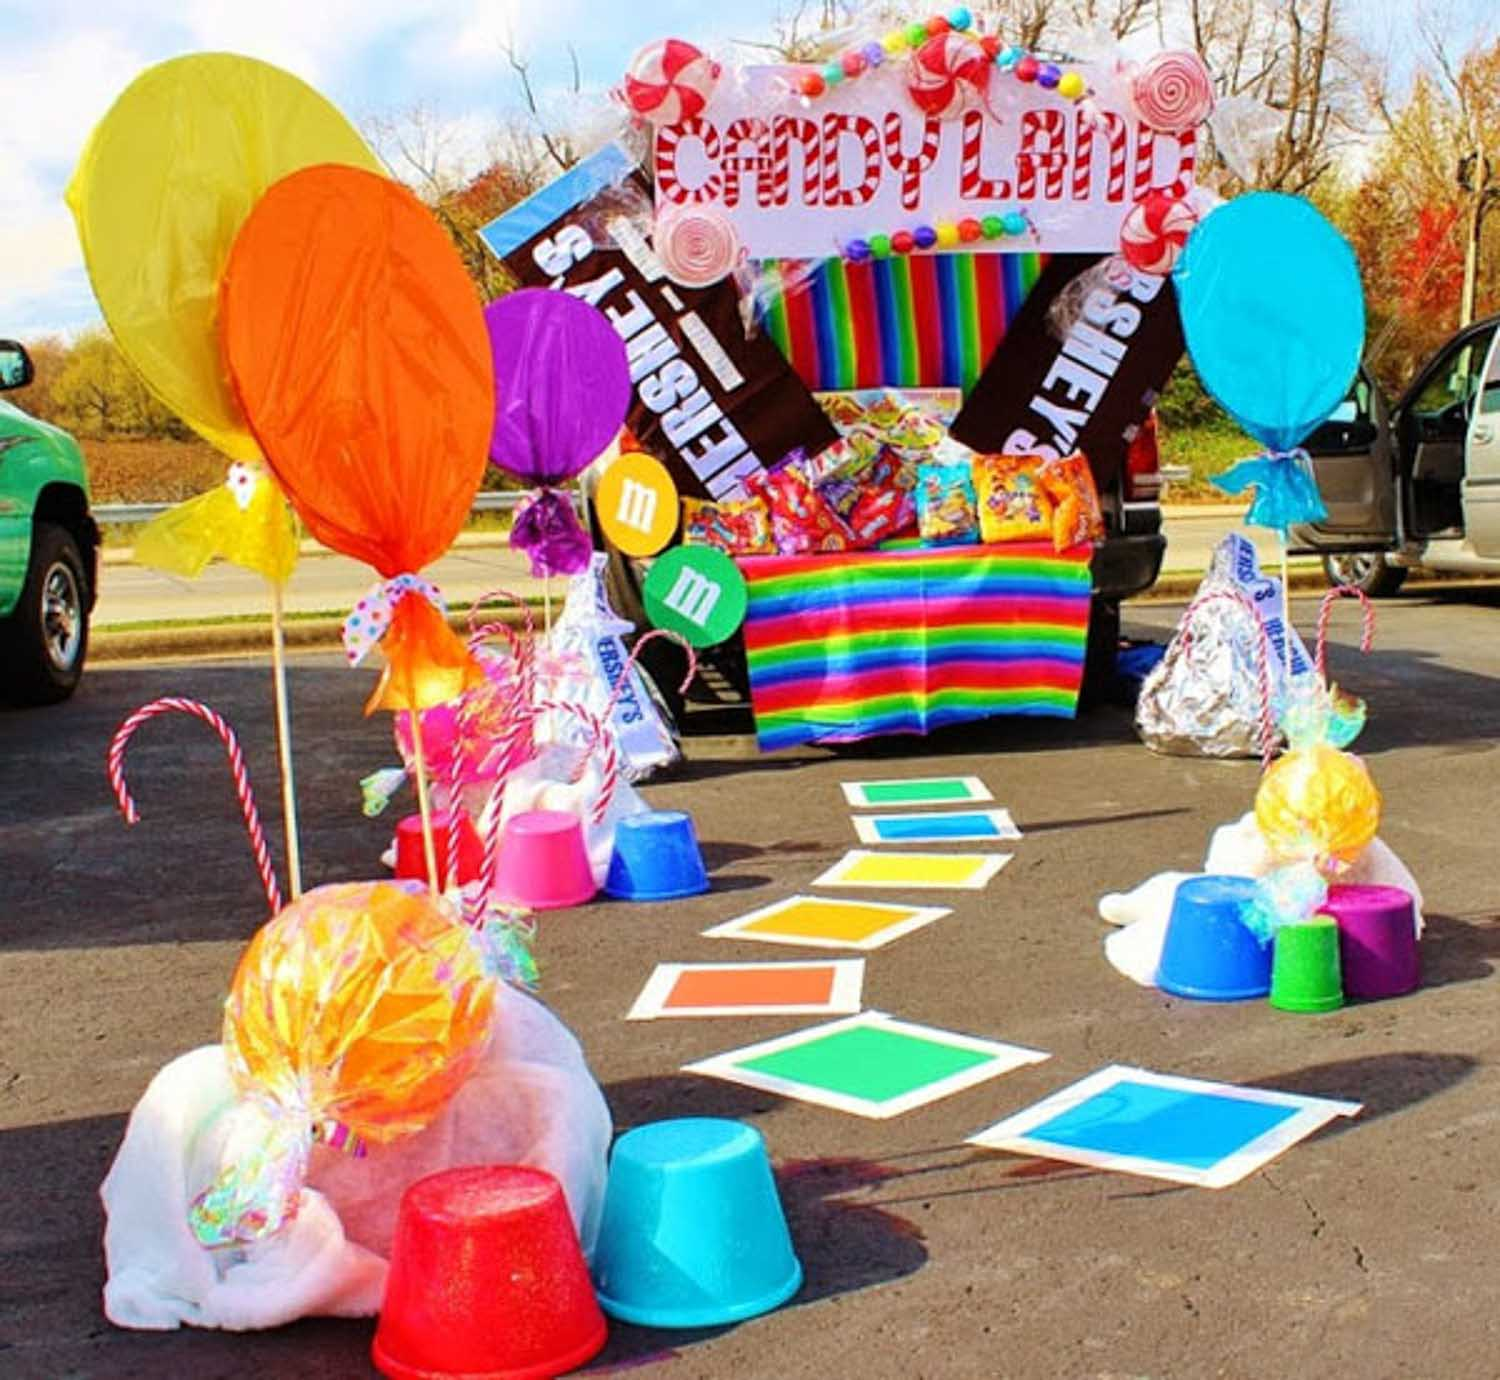 A candyland theme trunk or treat with big candies and balloons - great ideas for truck bed!